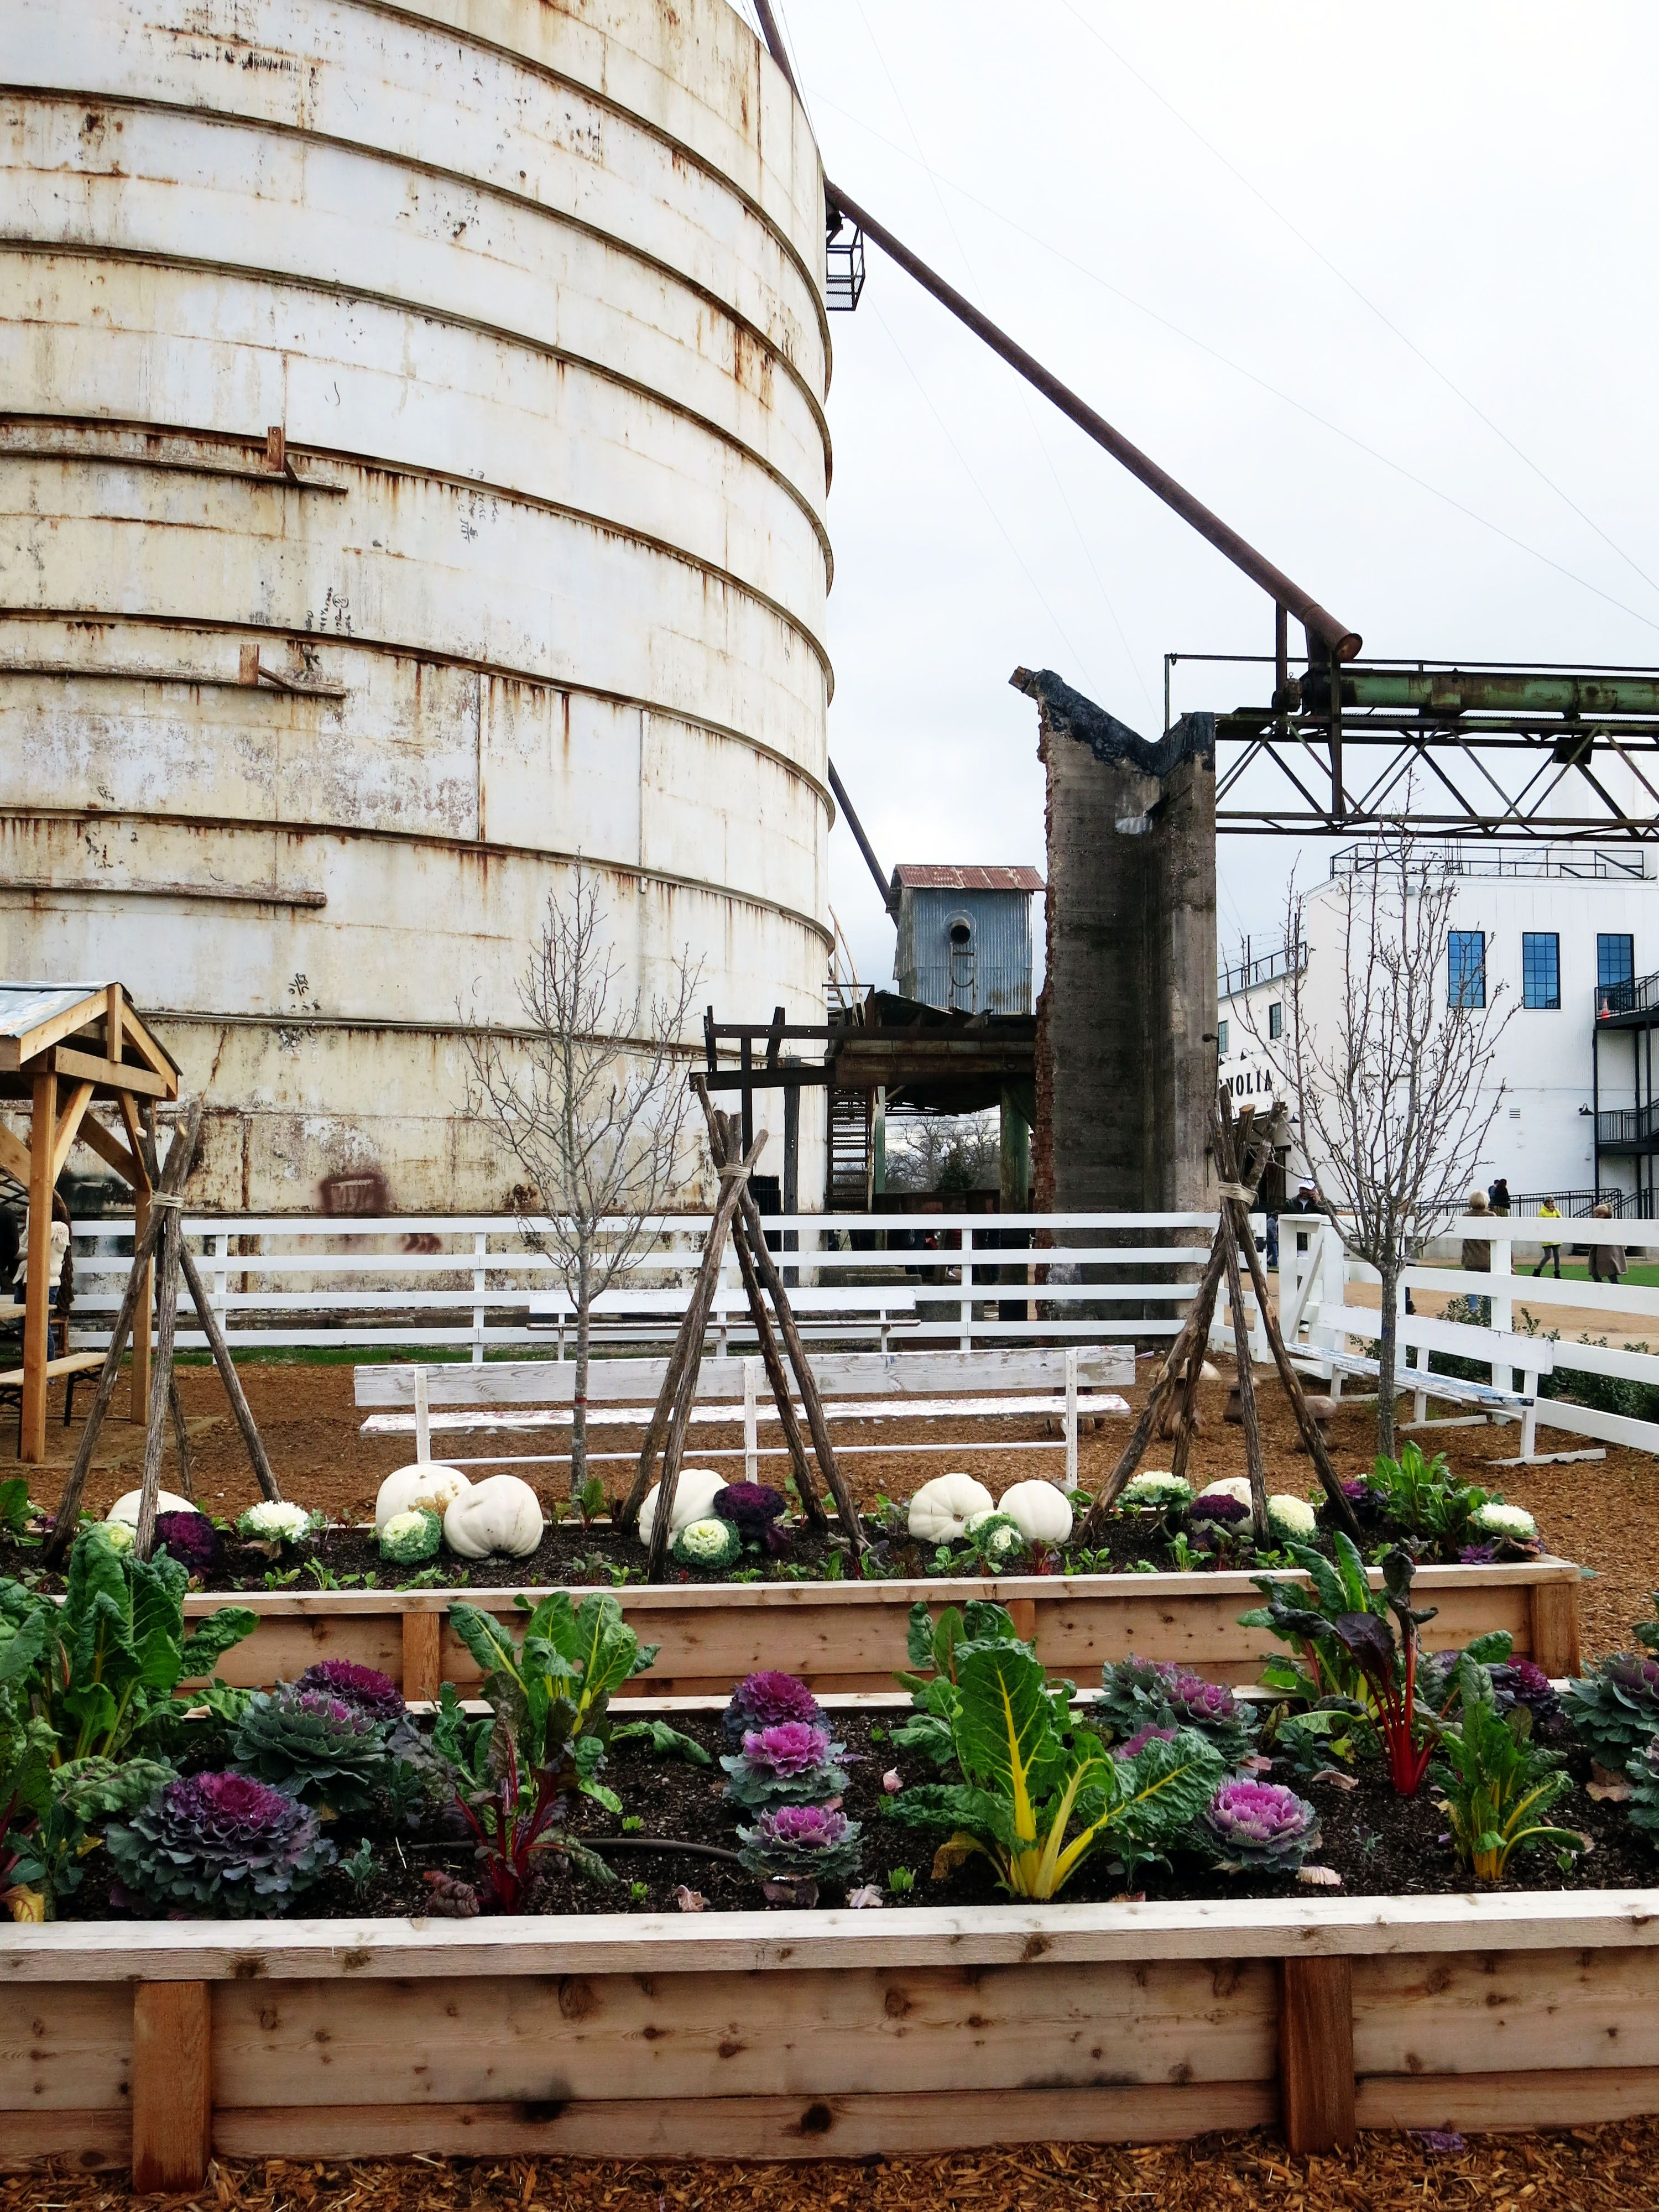 The Garden At Chip And Joanna Gaines Magnolia Market Silos From Hgtvs Fixer Upper Theonewhereimovetocalifornia